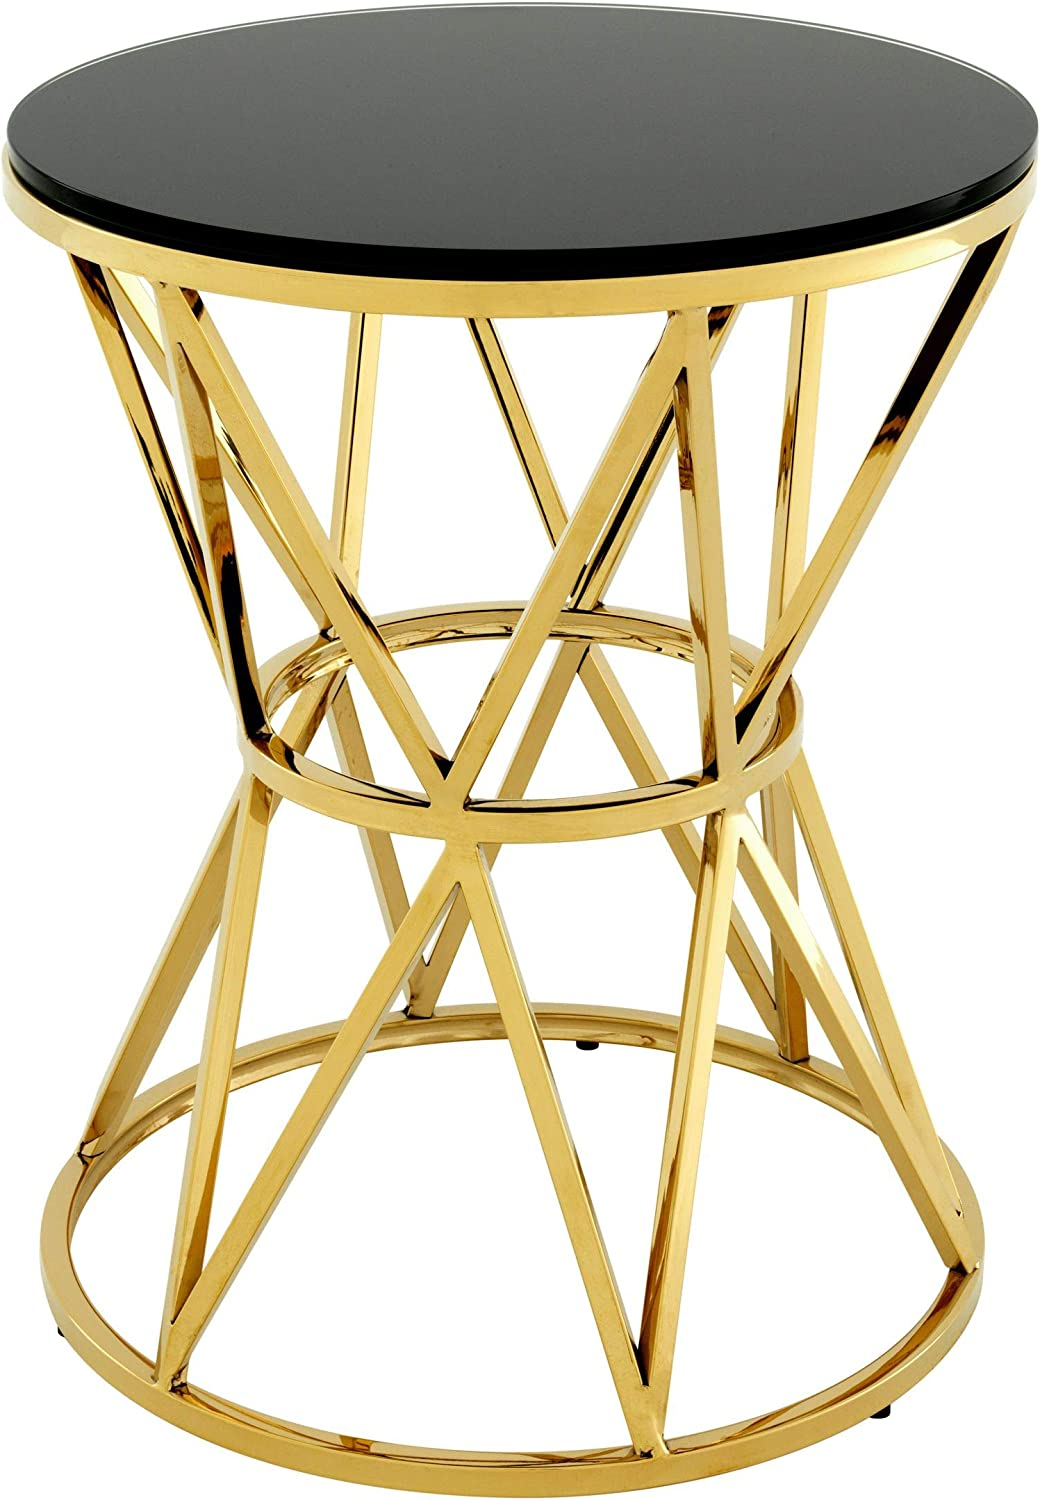 Antique Gold Metal Finish Glass Top Nightstand Accent Table End Bed Side Elegant